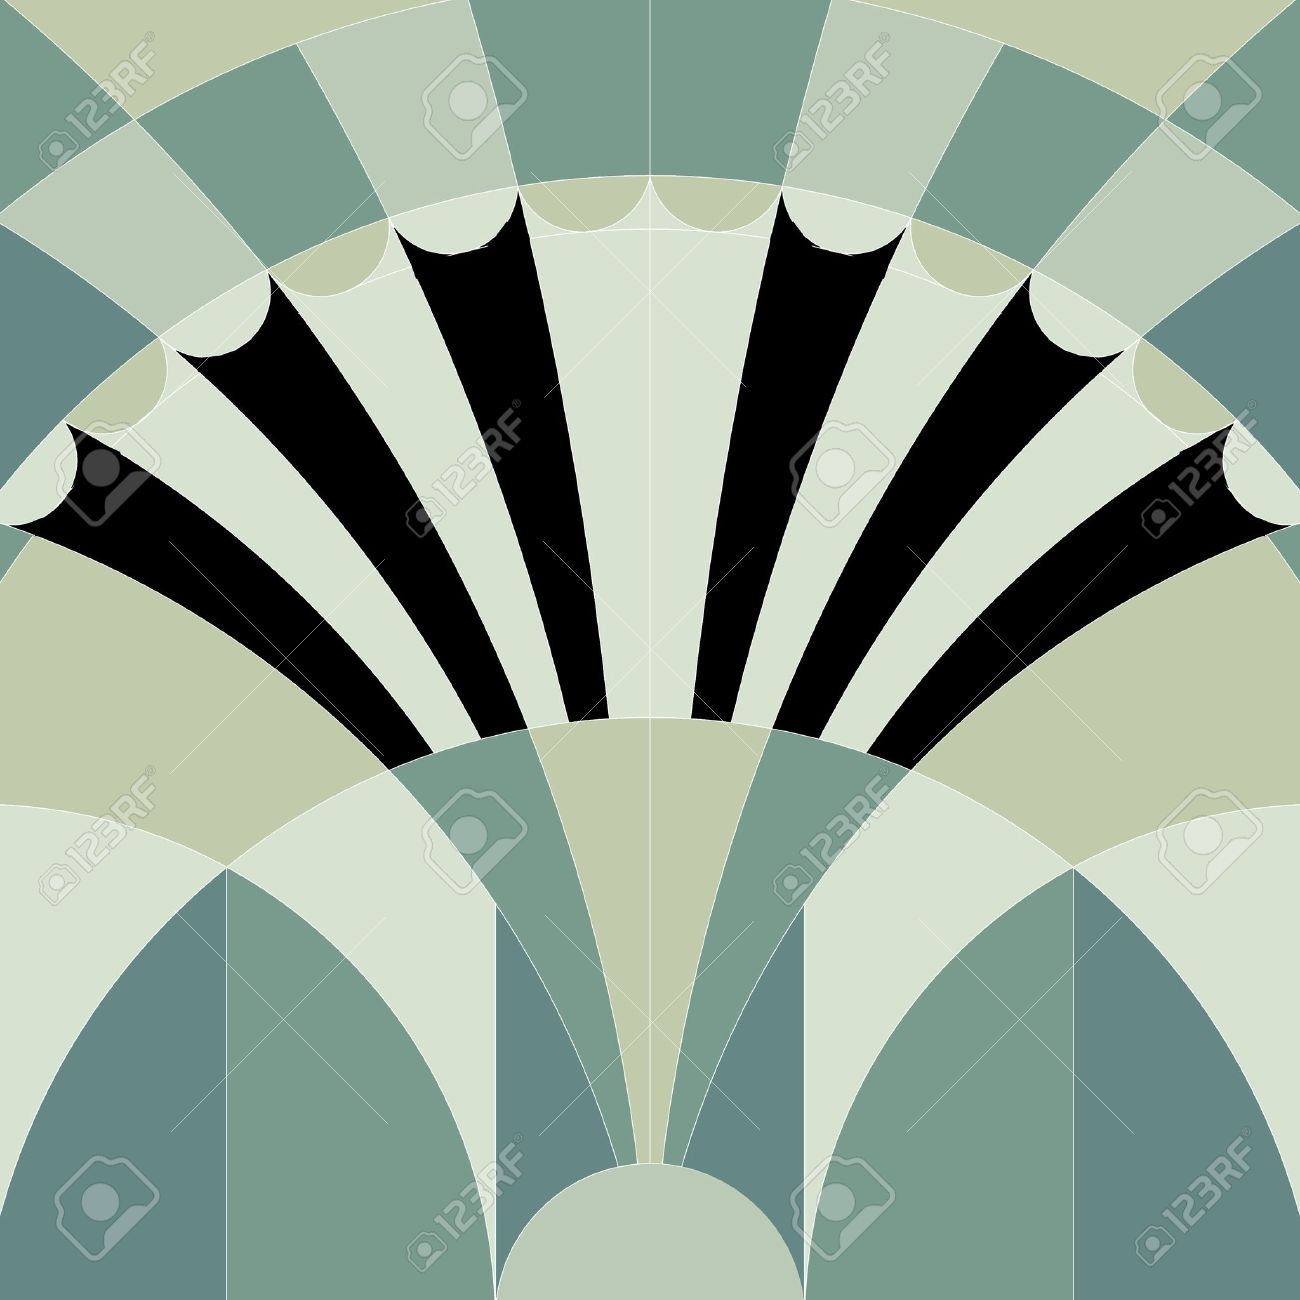 art deco graphic background Stock Photo - 15462586